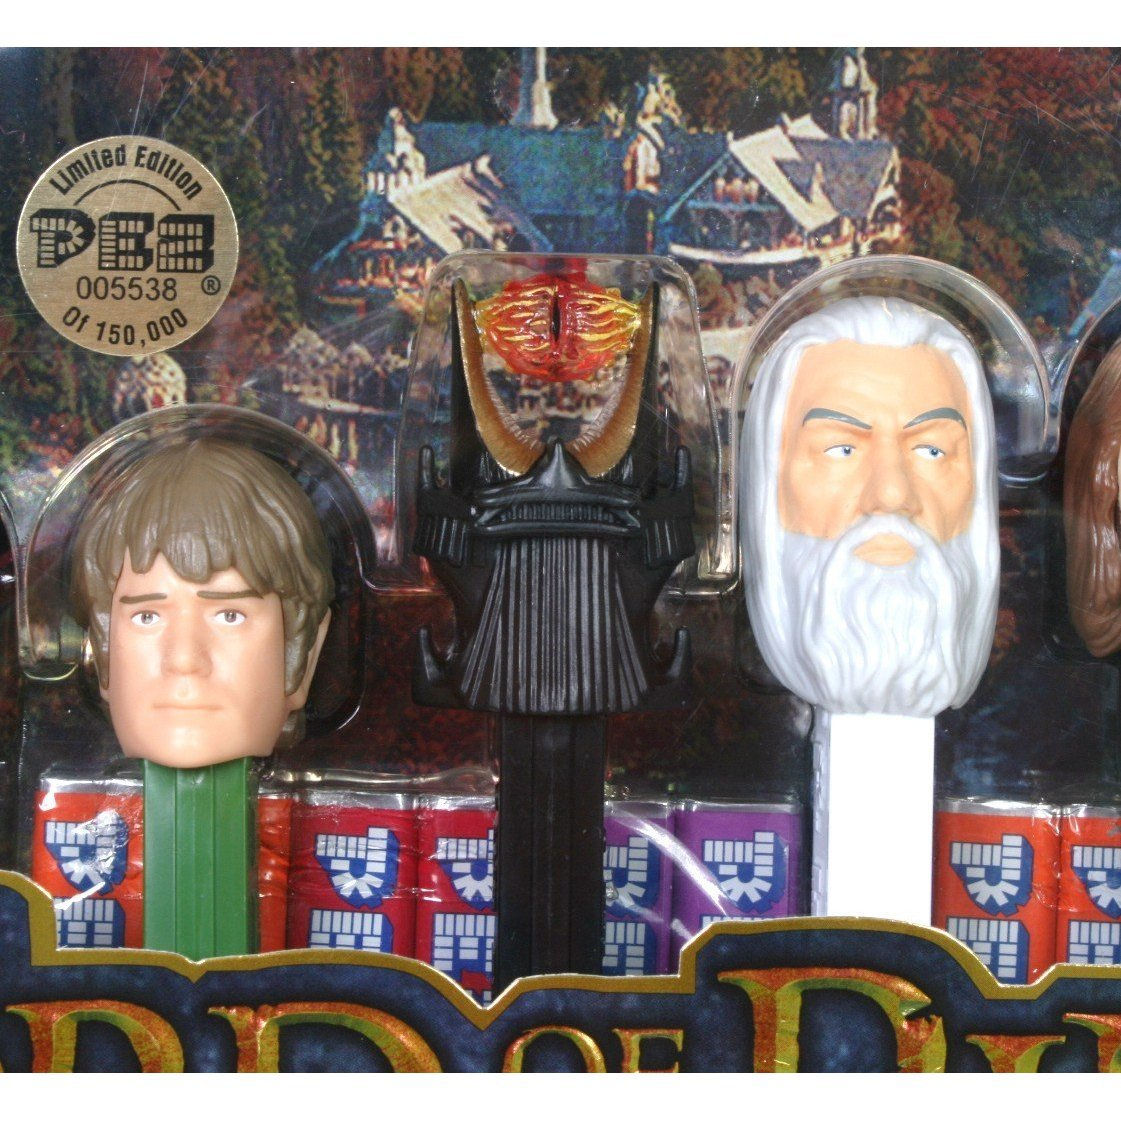 The Lord Of The Rings Limited Edition Eye Of Sauron Pez Collectors Series Dispensers Pez Candy Pez Candy The Lord Of The Rings